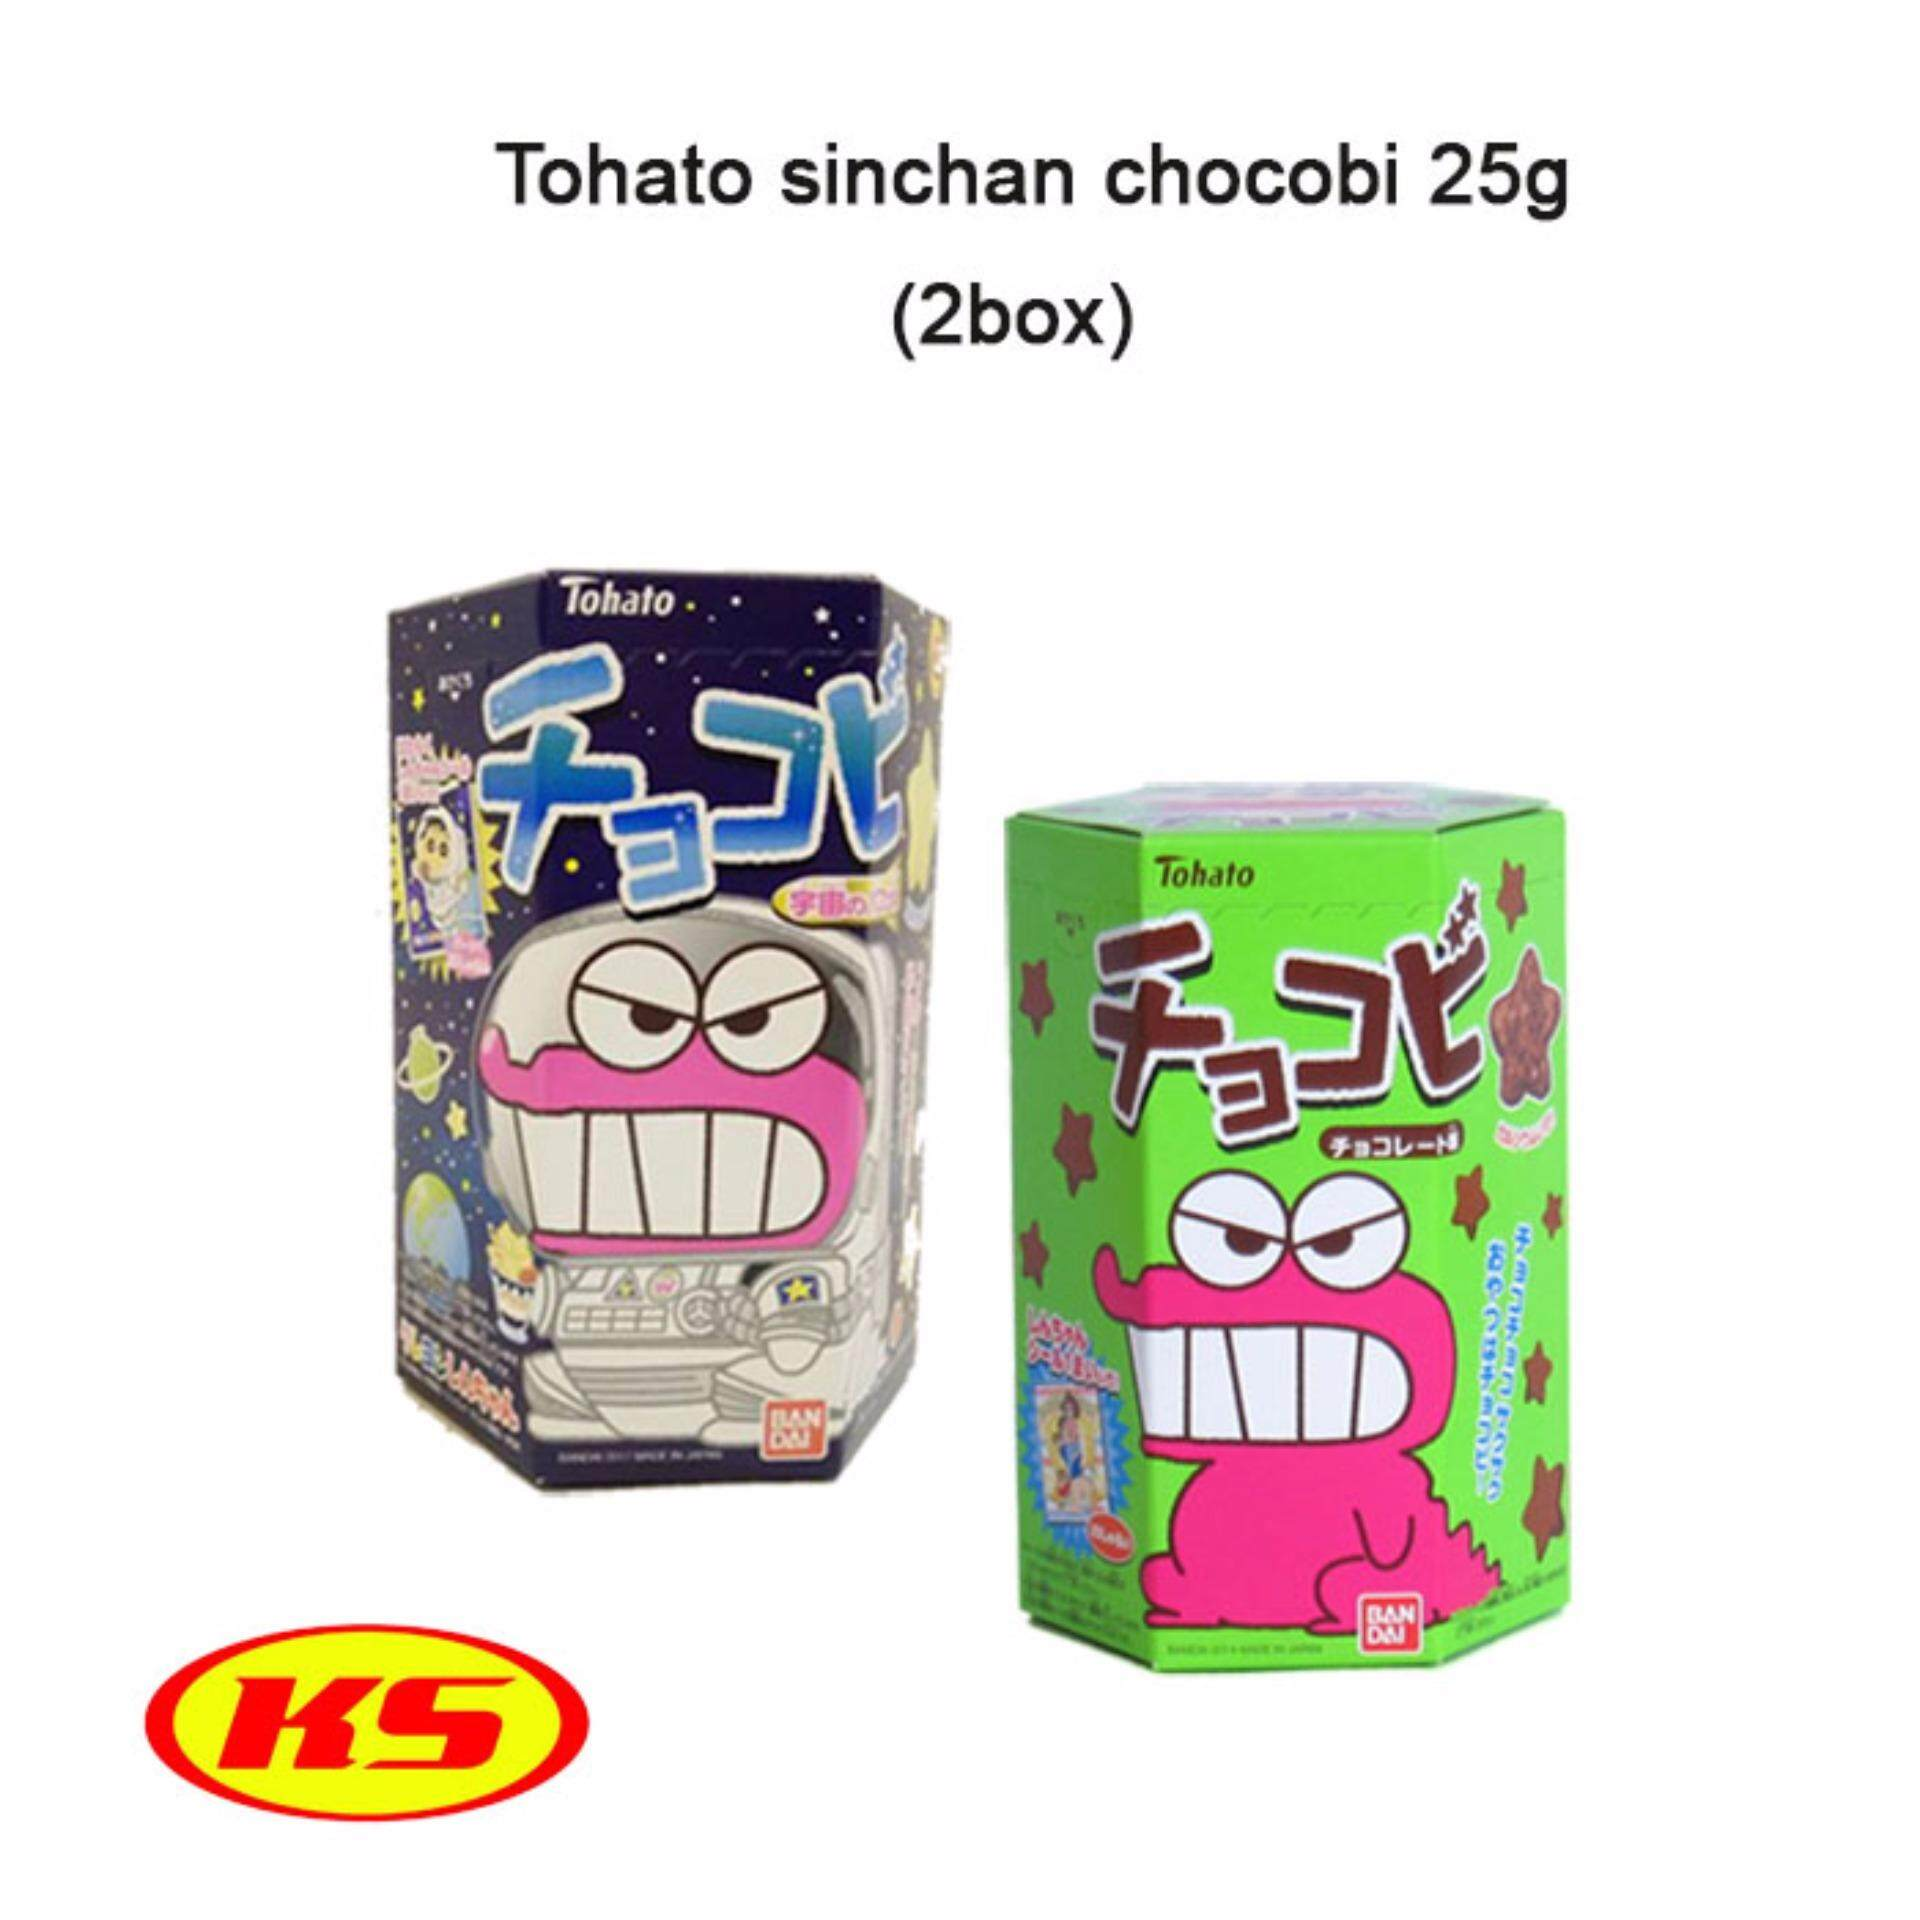 (2box) JAPAN TOHATO SINCHAN CHOCOBI BISCUIT SNACK 25G